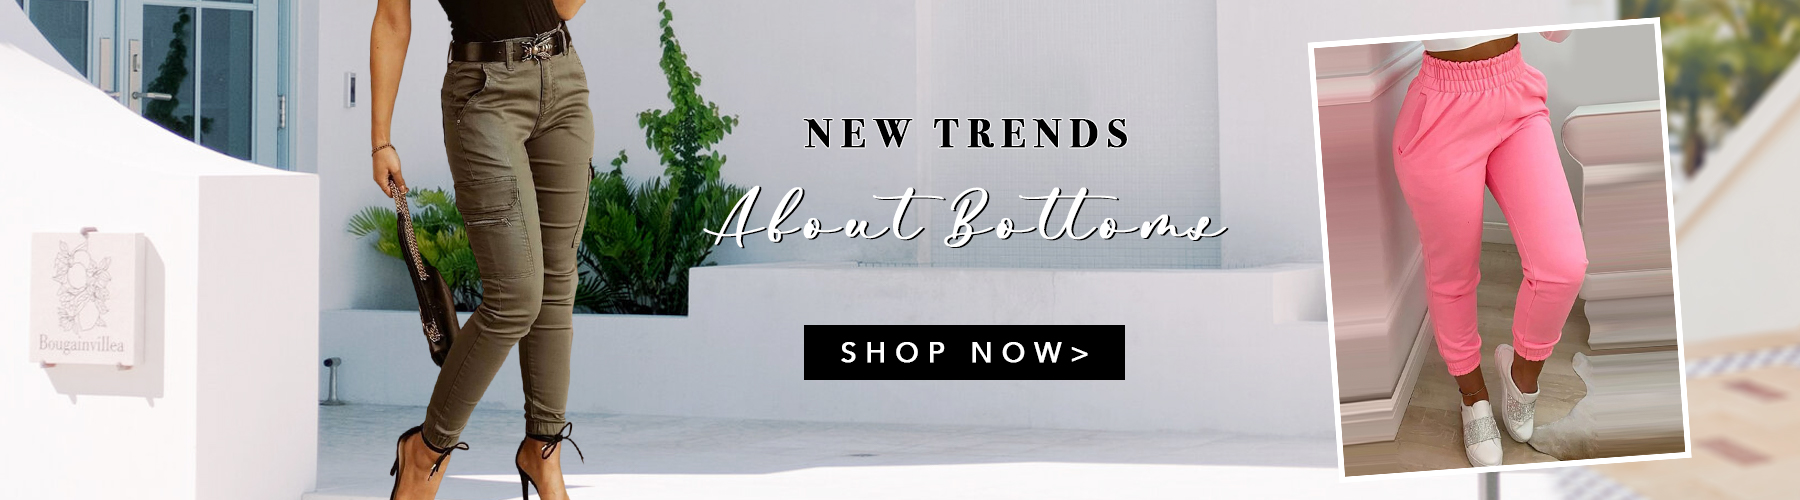 New Trends About Bottoms